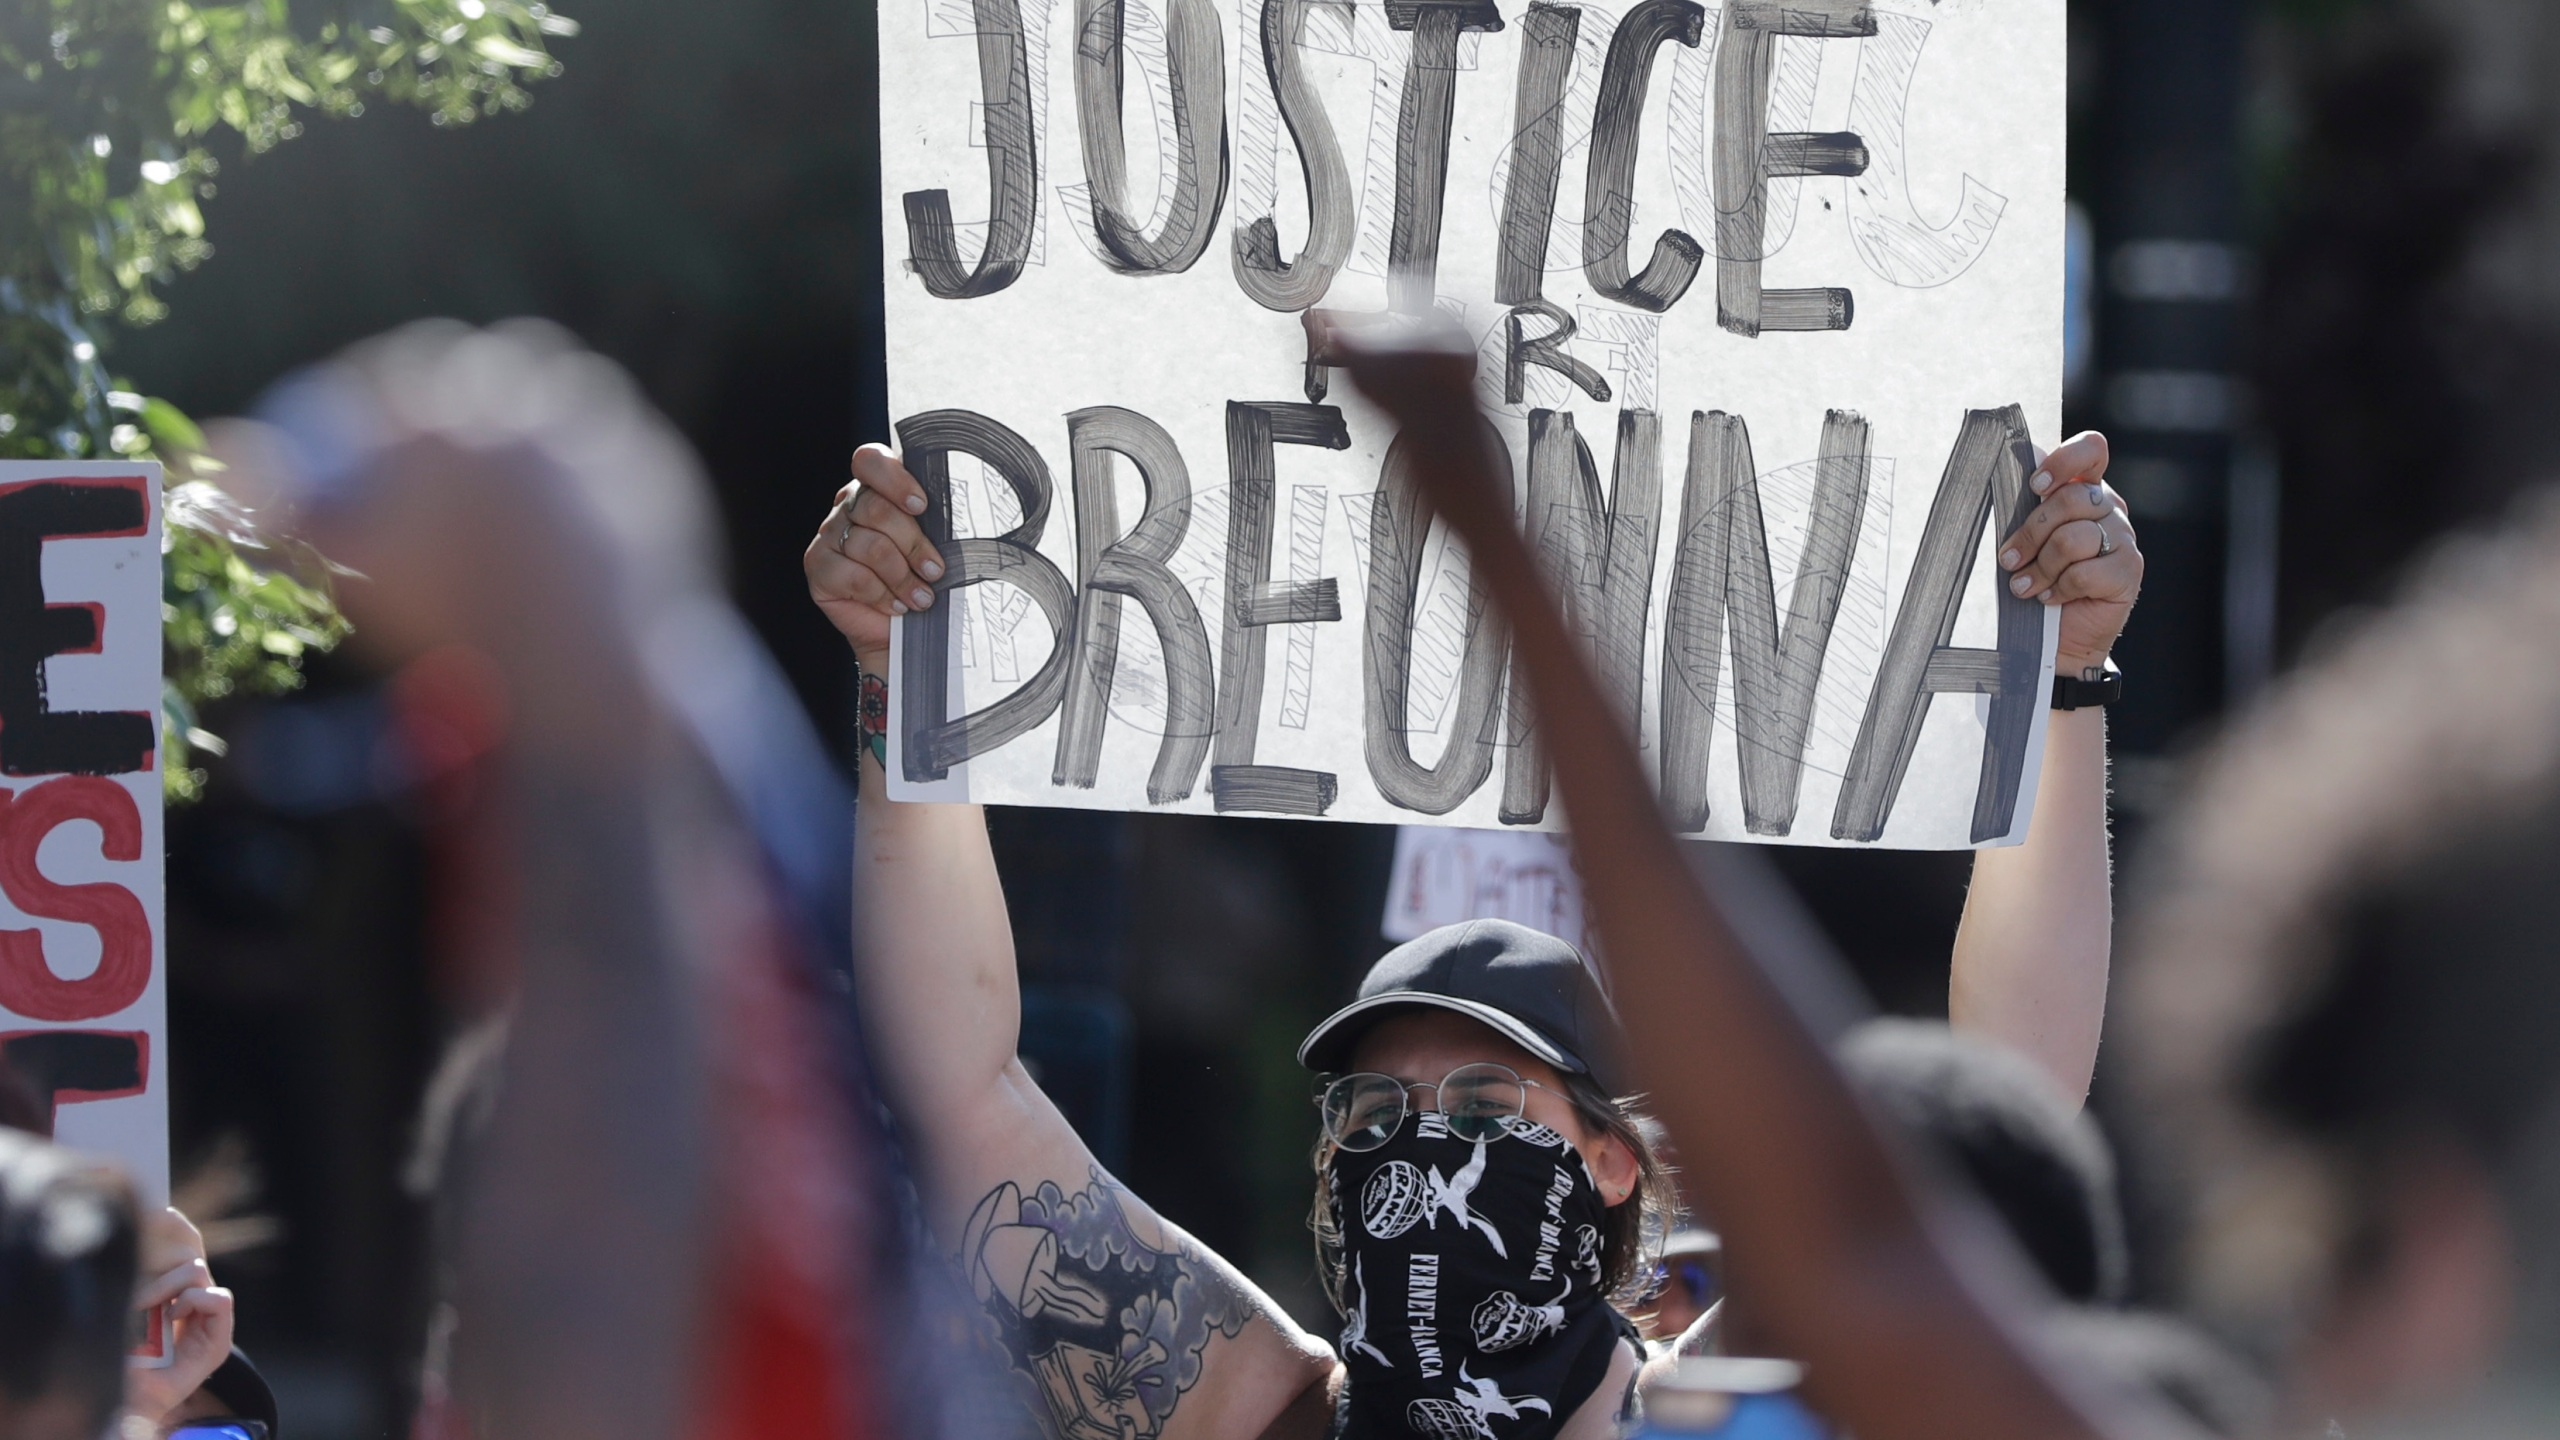 Shooting Reported At Breonna Taylor Protest In Kentucky Cbs 42